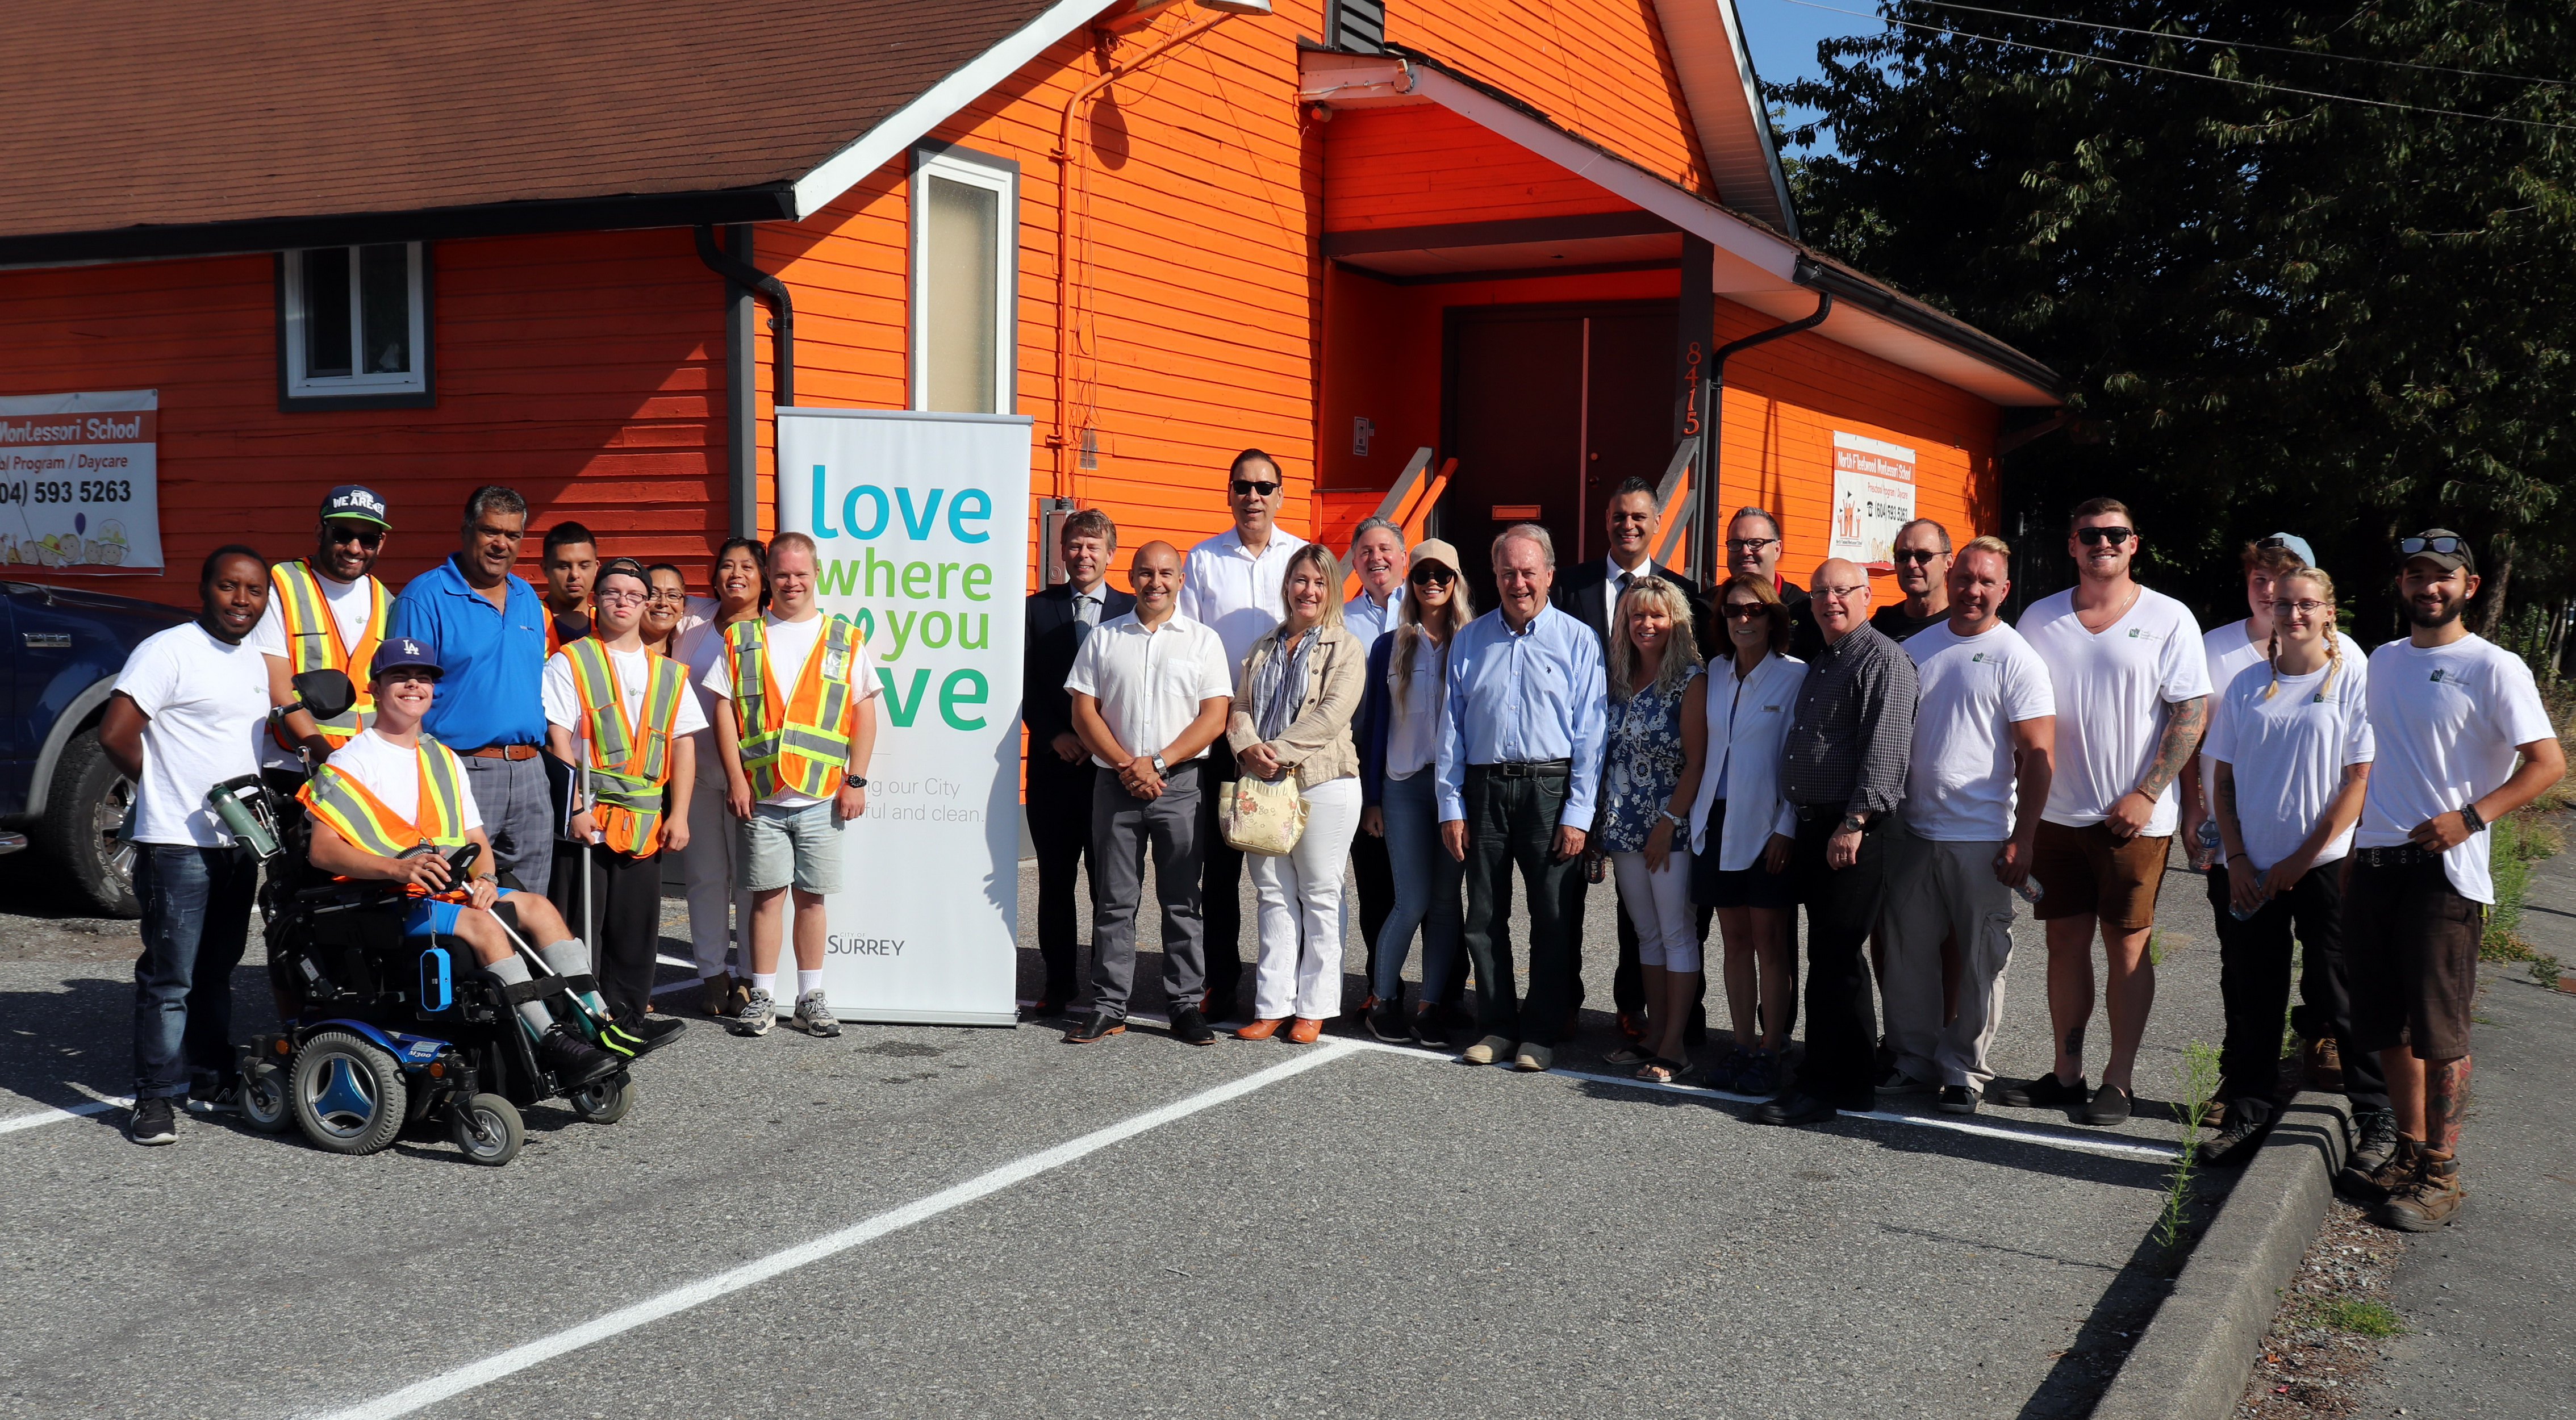 Fleetwood Business Improvement Association launches resourcing and programs during Surrey's Love Where You Live initiative